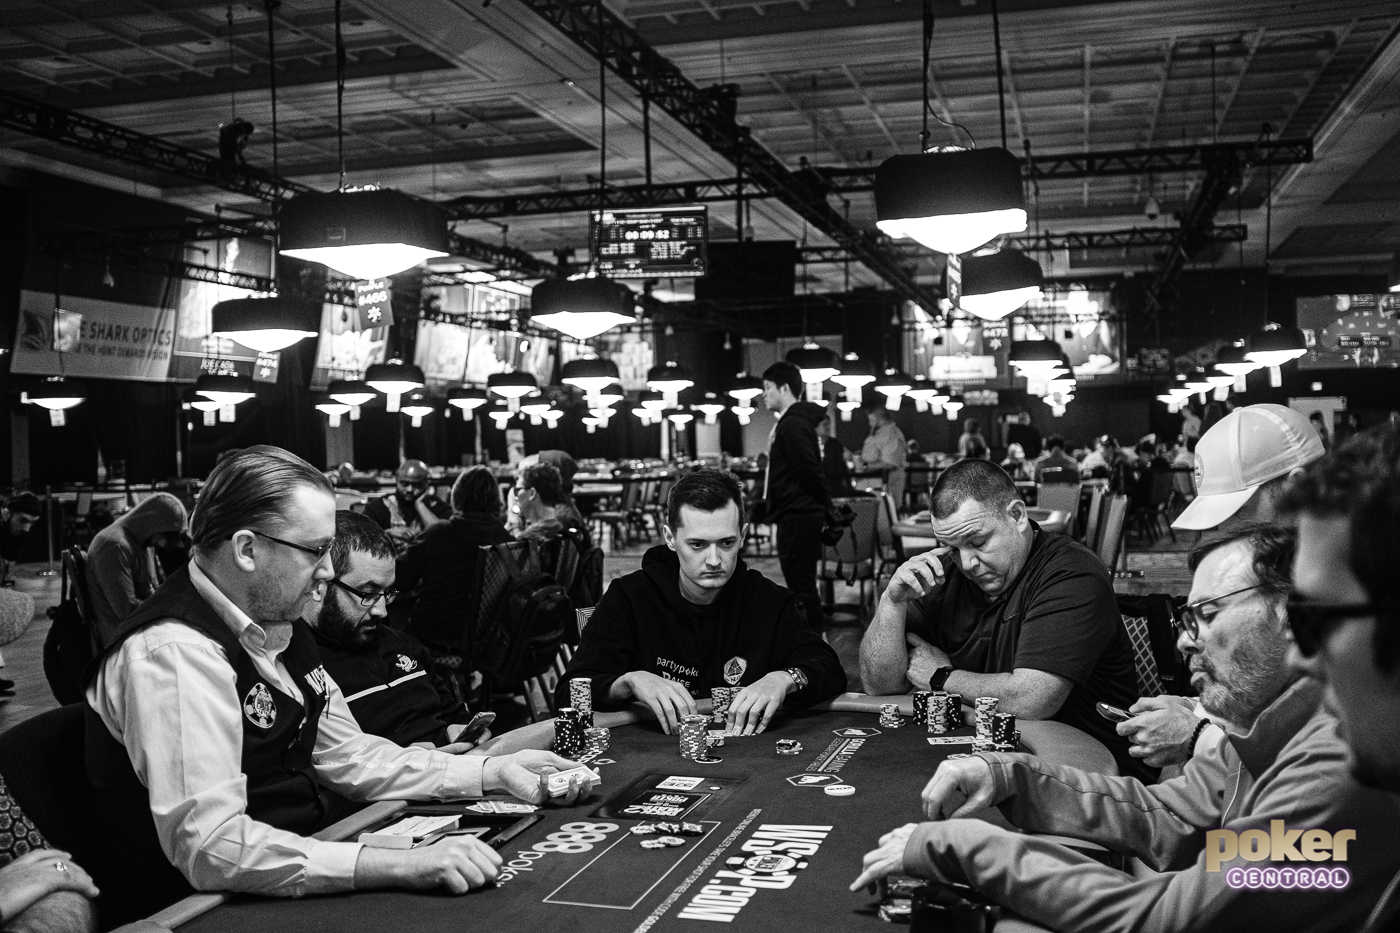 Nick Marchington in action during Day 6 of the 2019 WSOP Main Event.